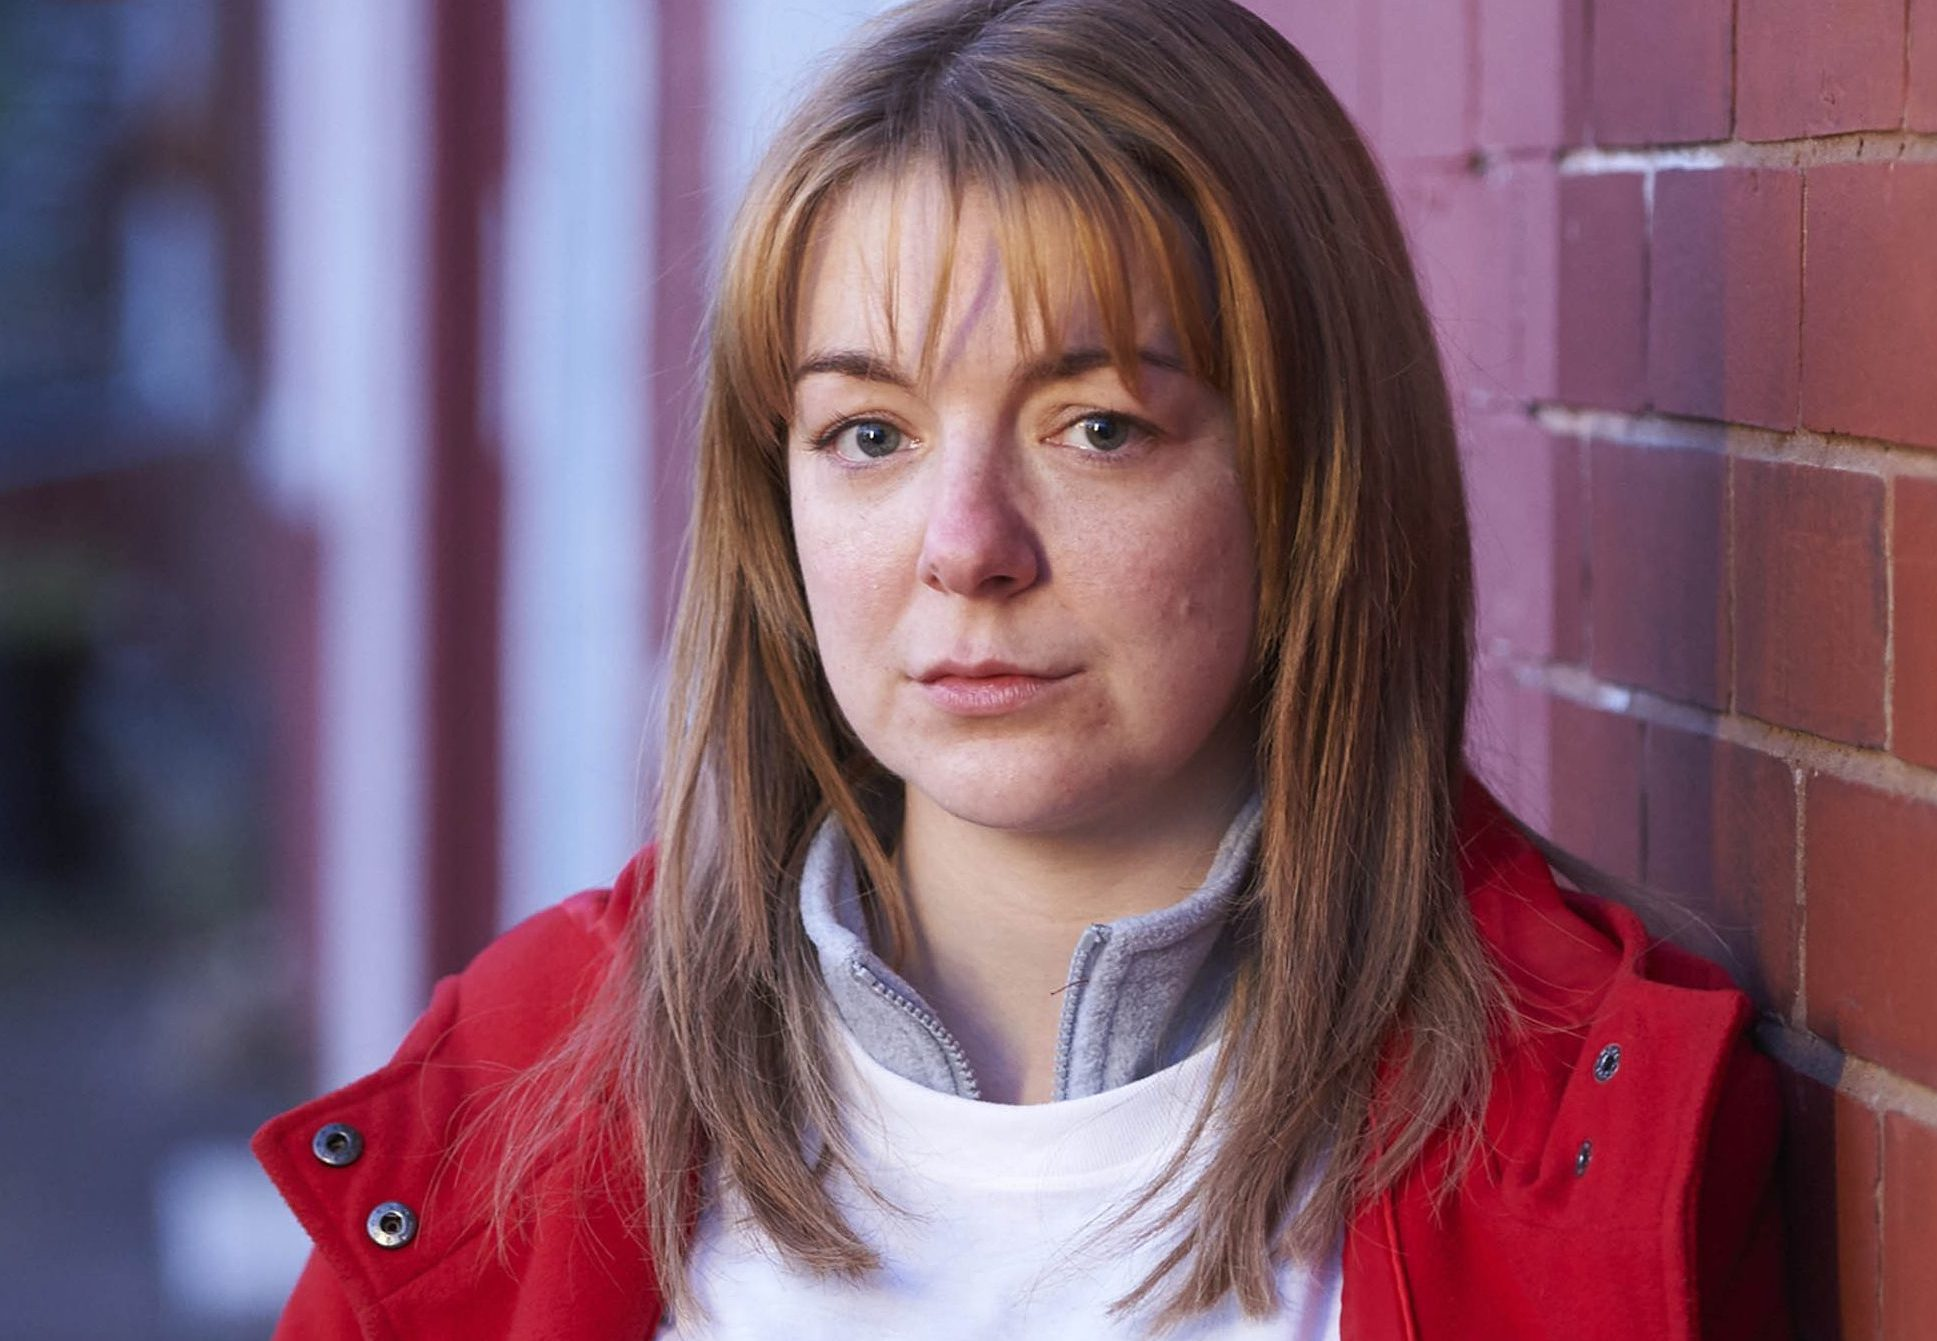 Sheridan Smith as Julie Bushby in The Moorside.